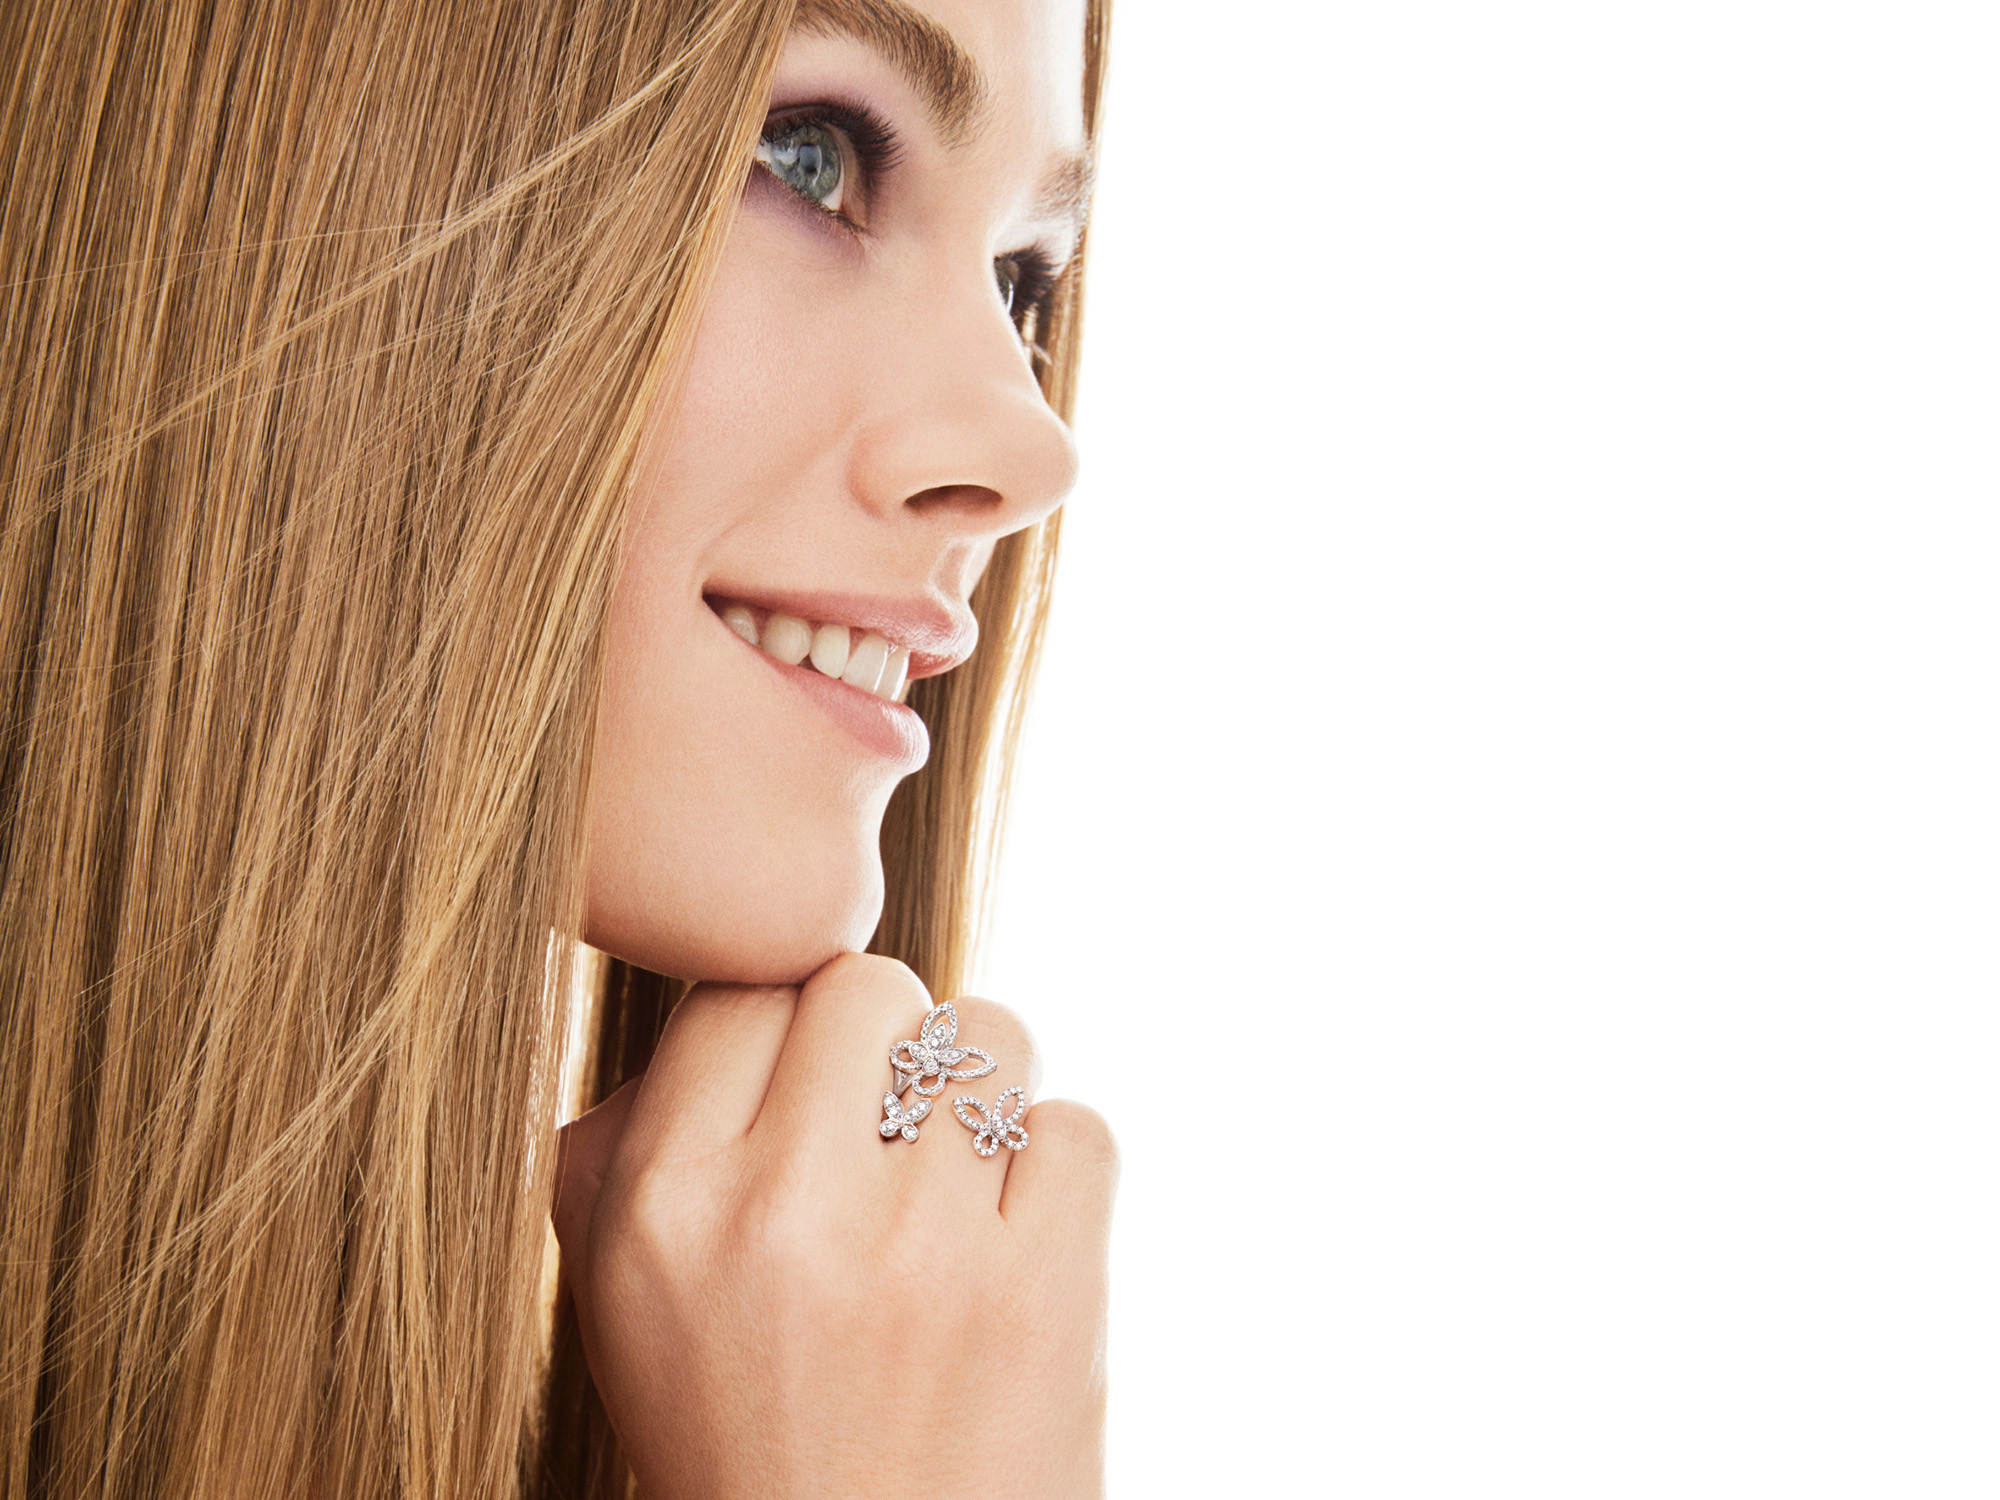 Model wearing Triple Butterfly Silhouette Diamond Ring from the Graff jewellery collection